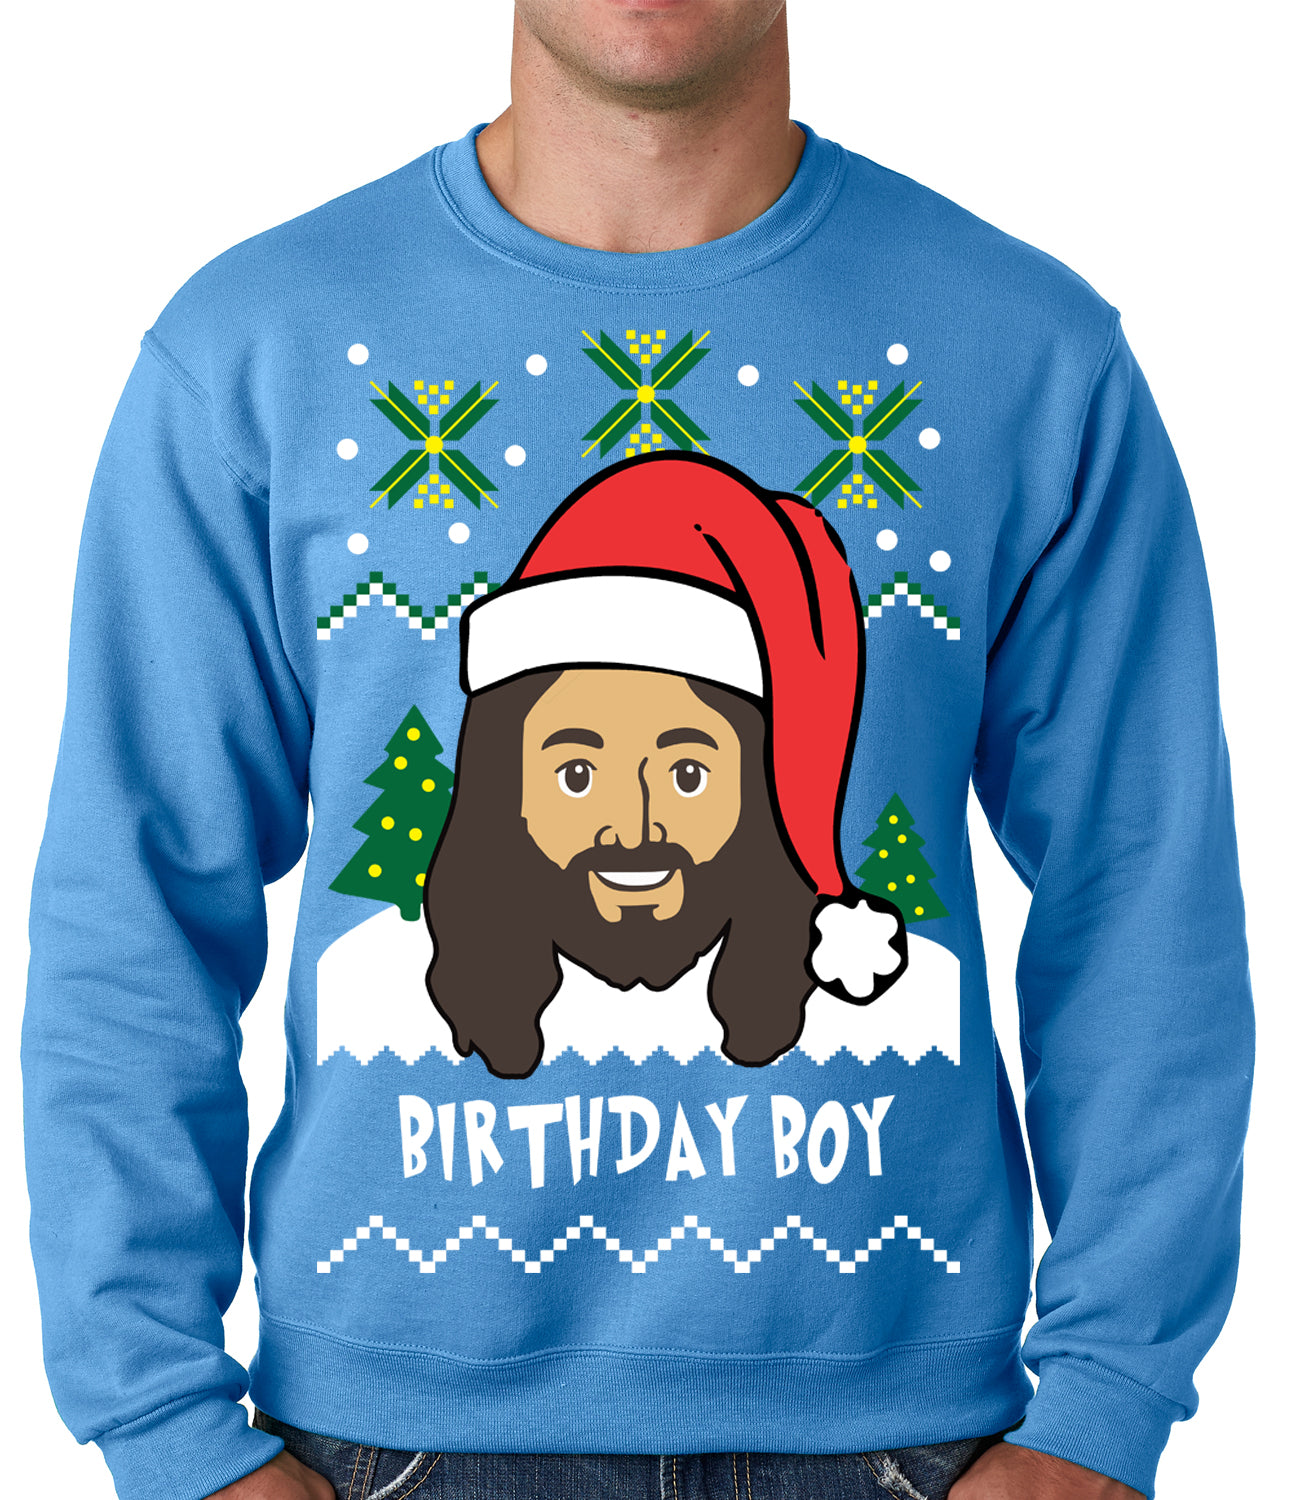 Jesus - Birthday Boy - Ugly Christmas Sweater Crewneck Sweatshirt ...